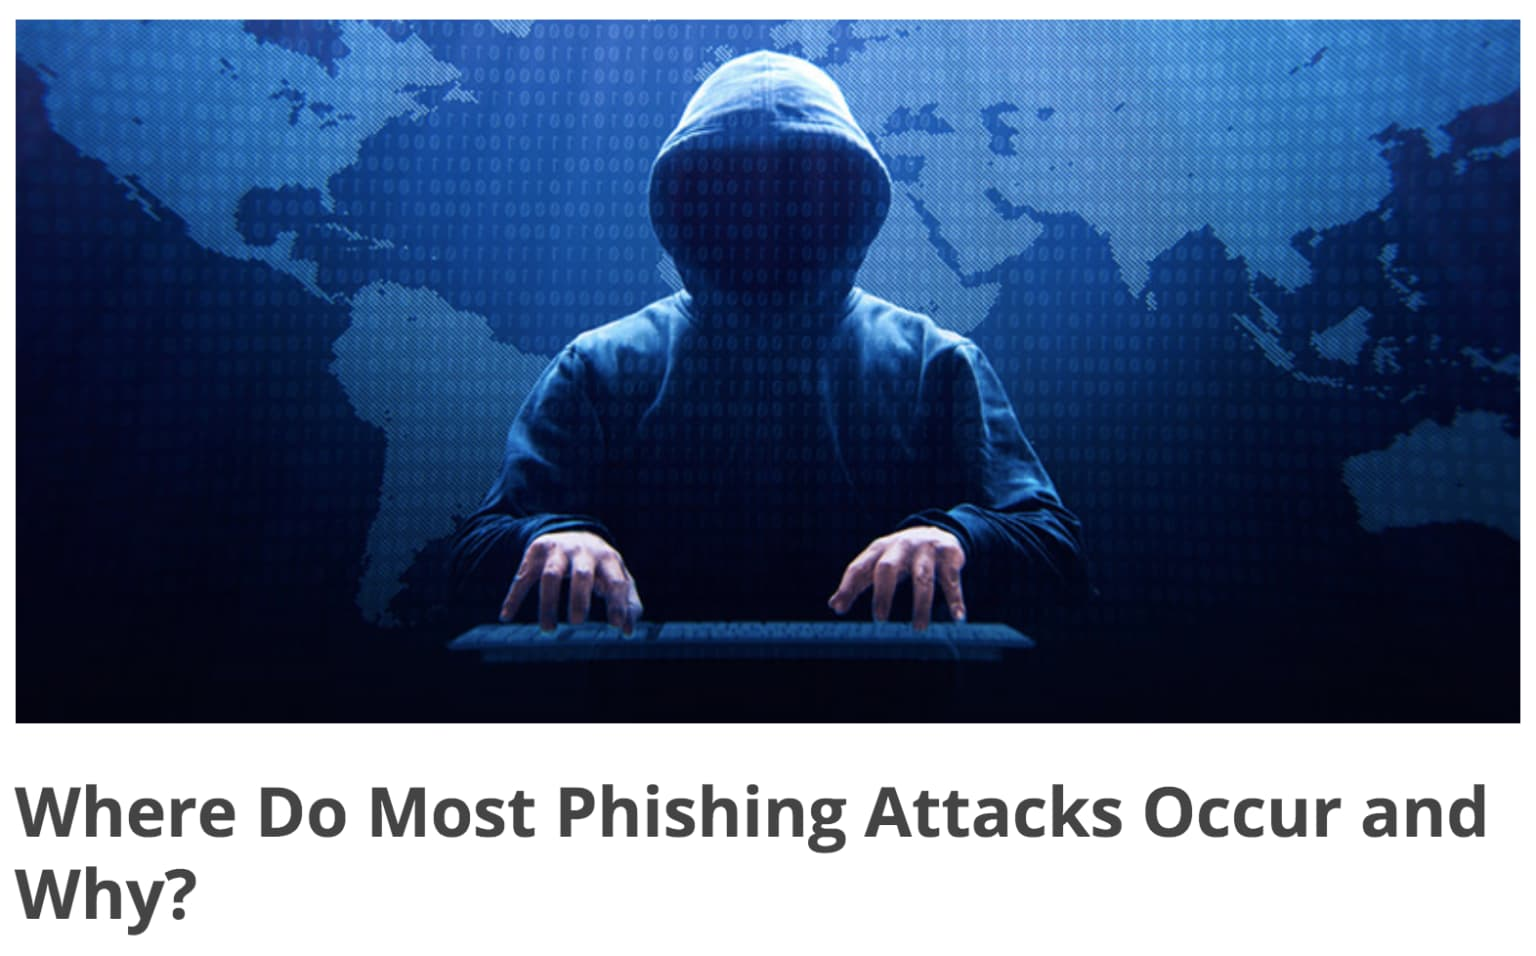 Where Most Phishing Attacks Occur and Why.